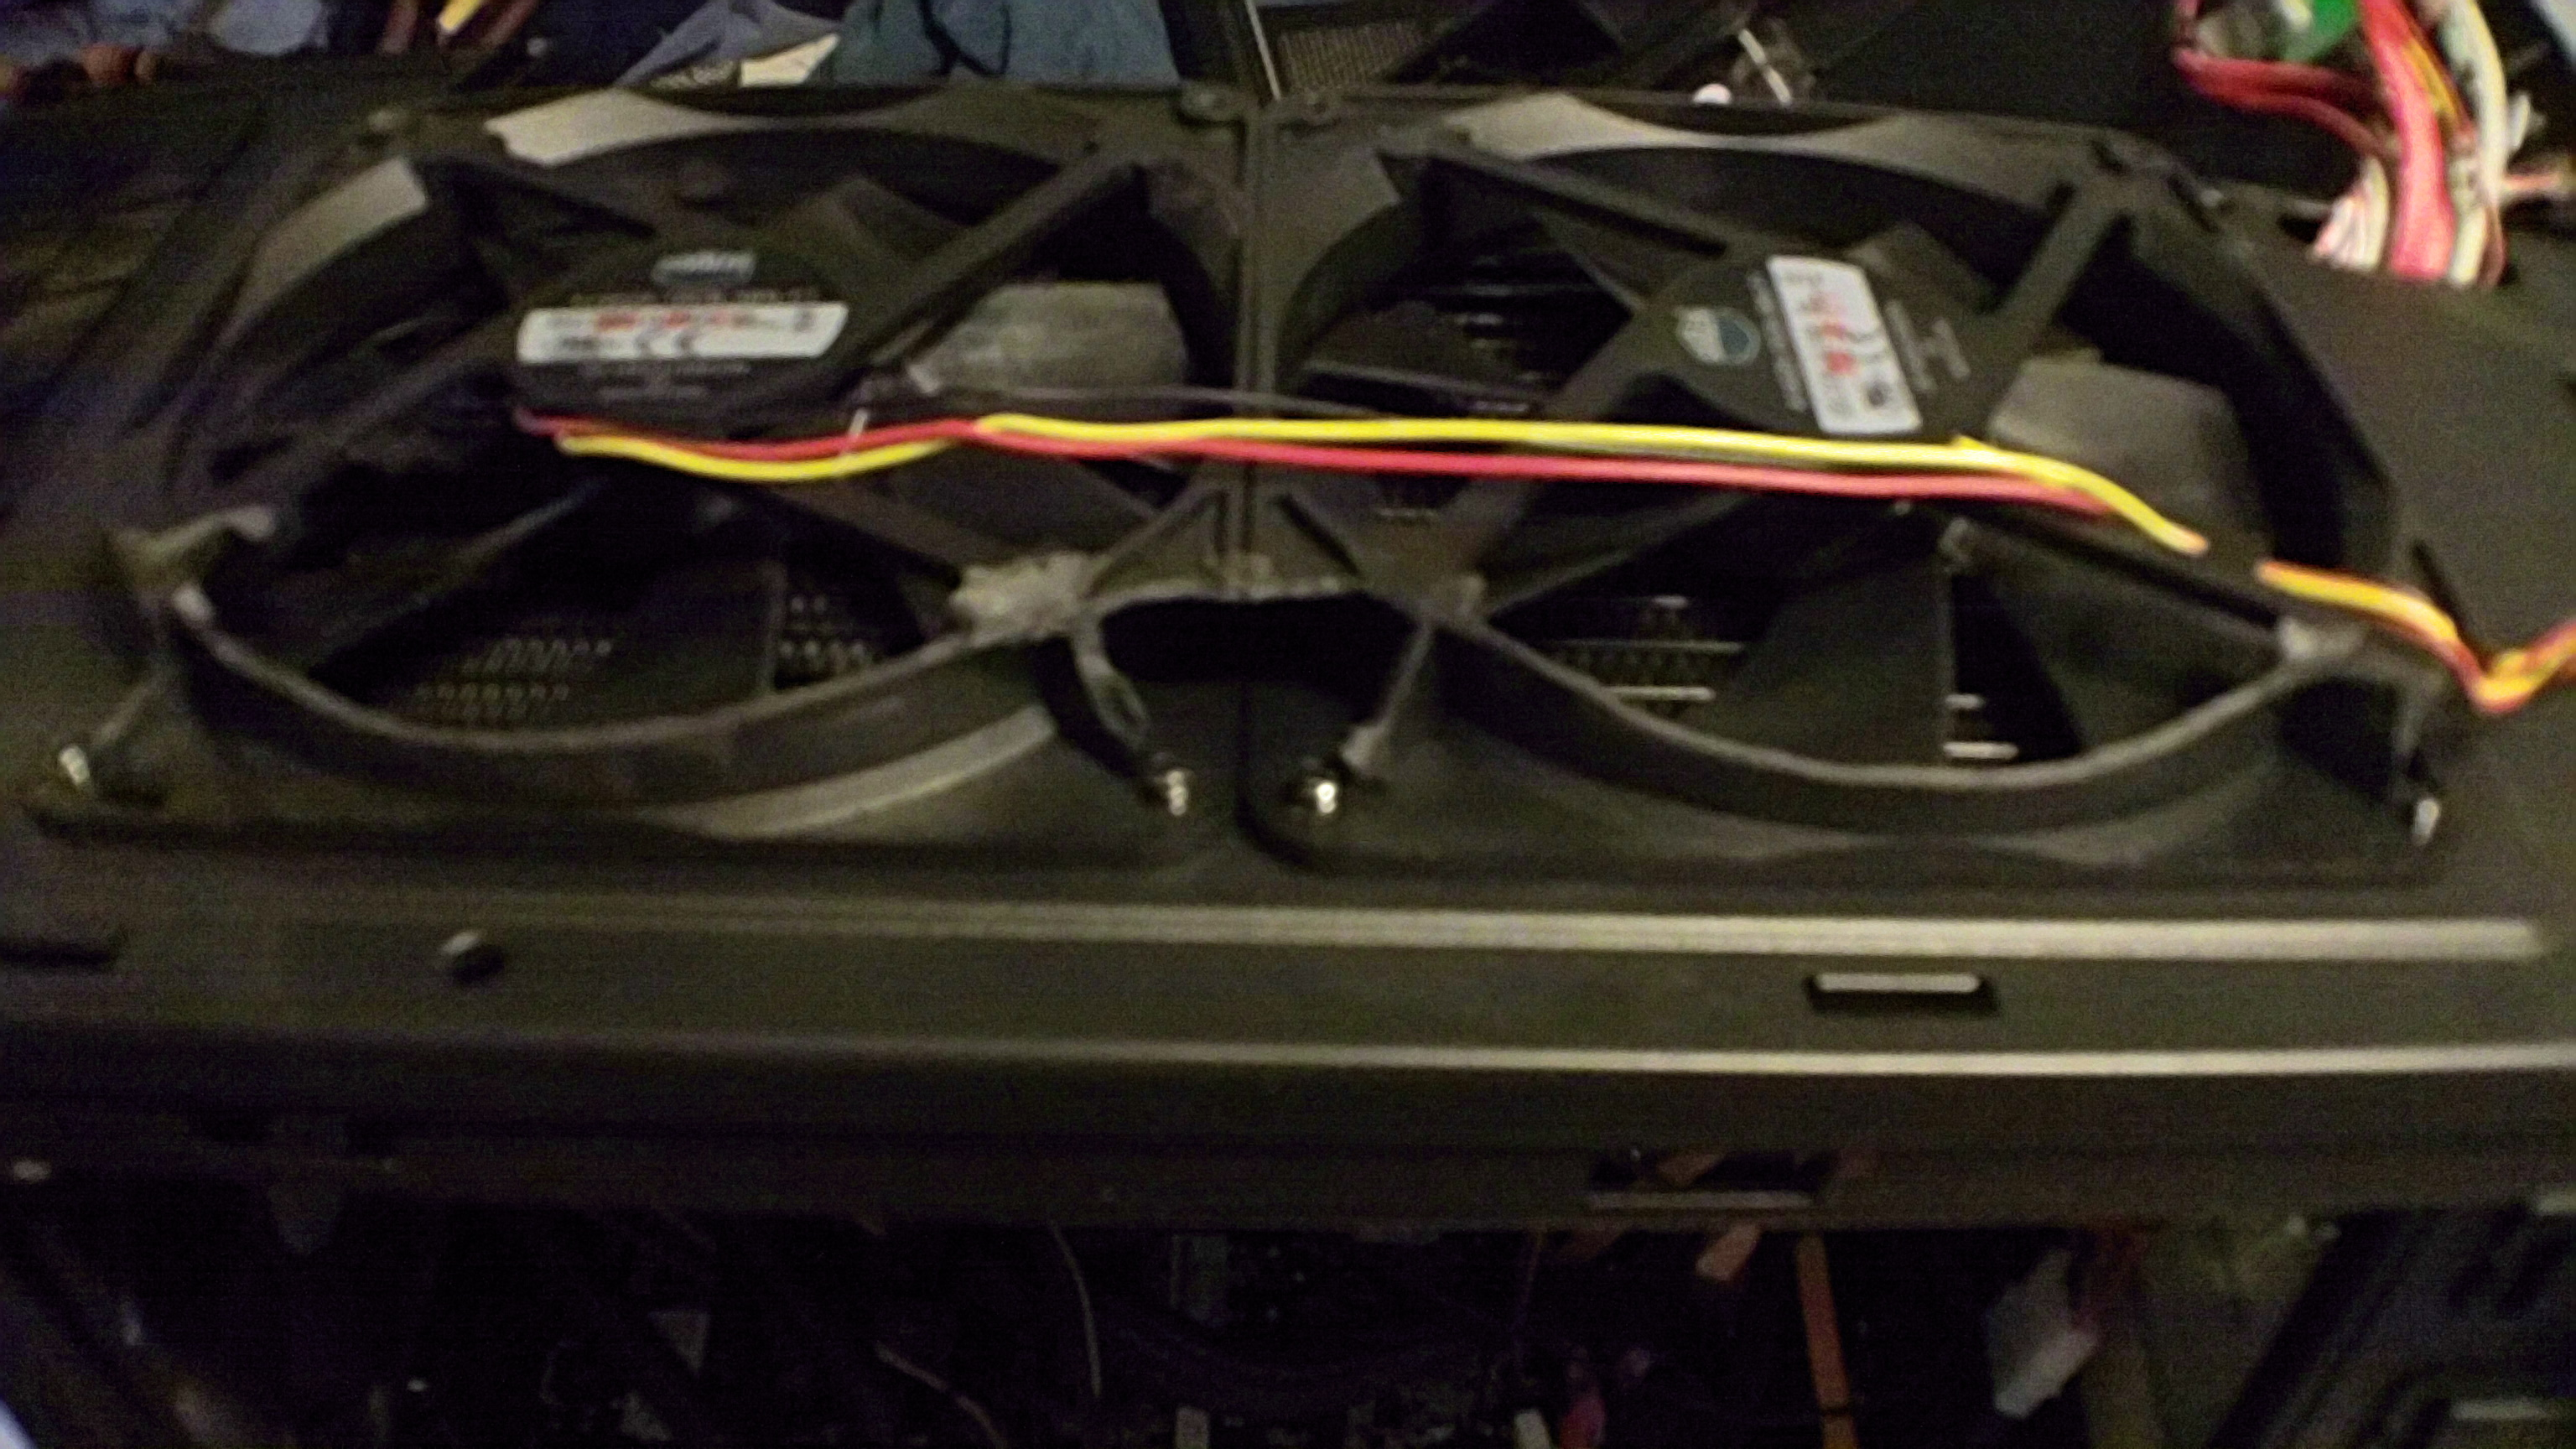 shaved the 140mm fans to fit on top of the cm690 ii advanced